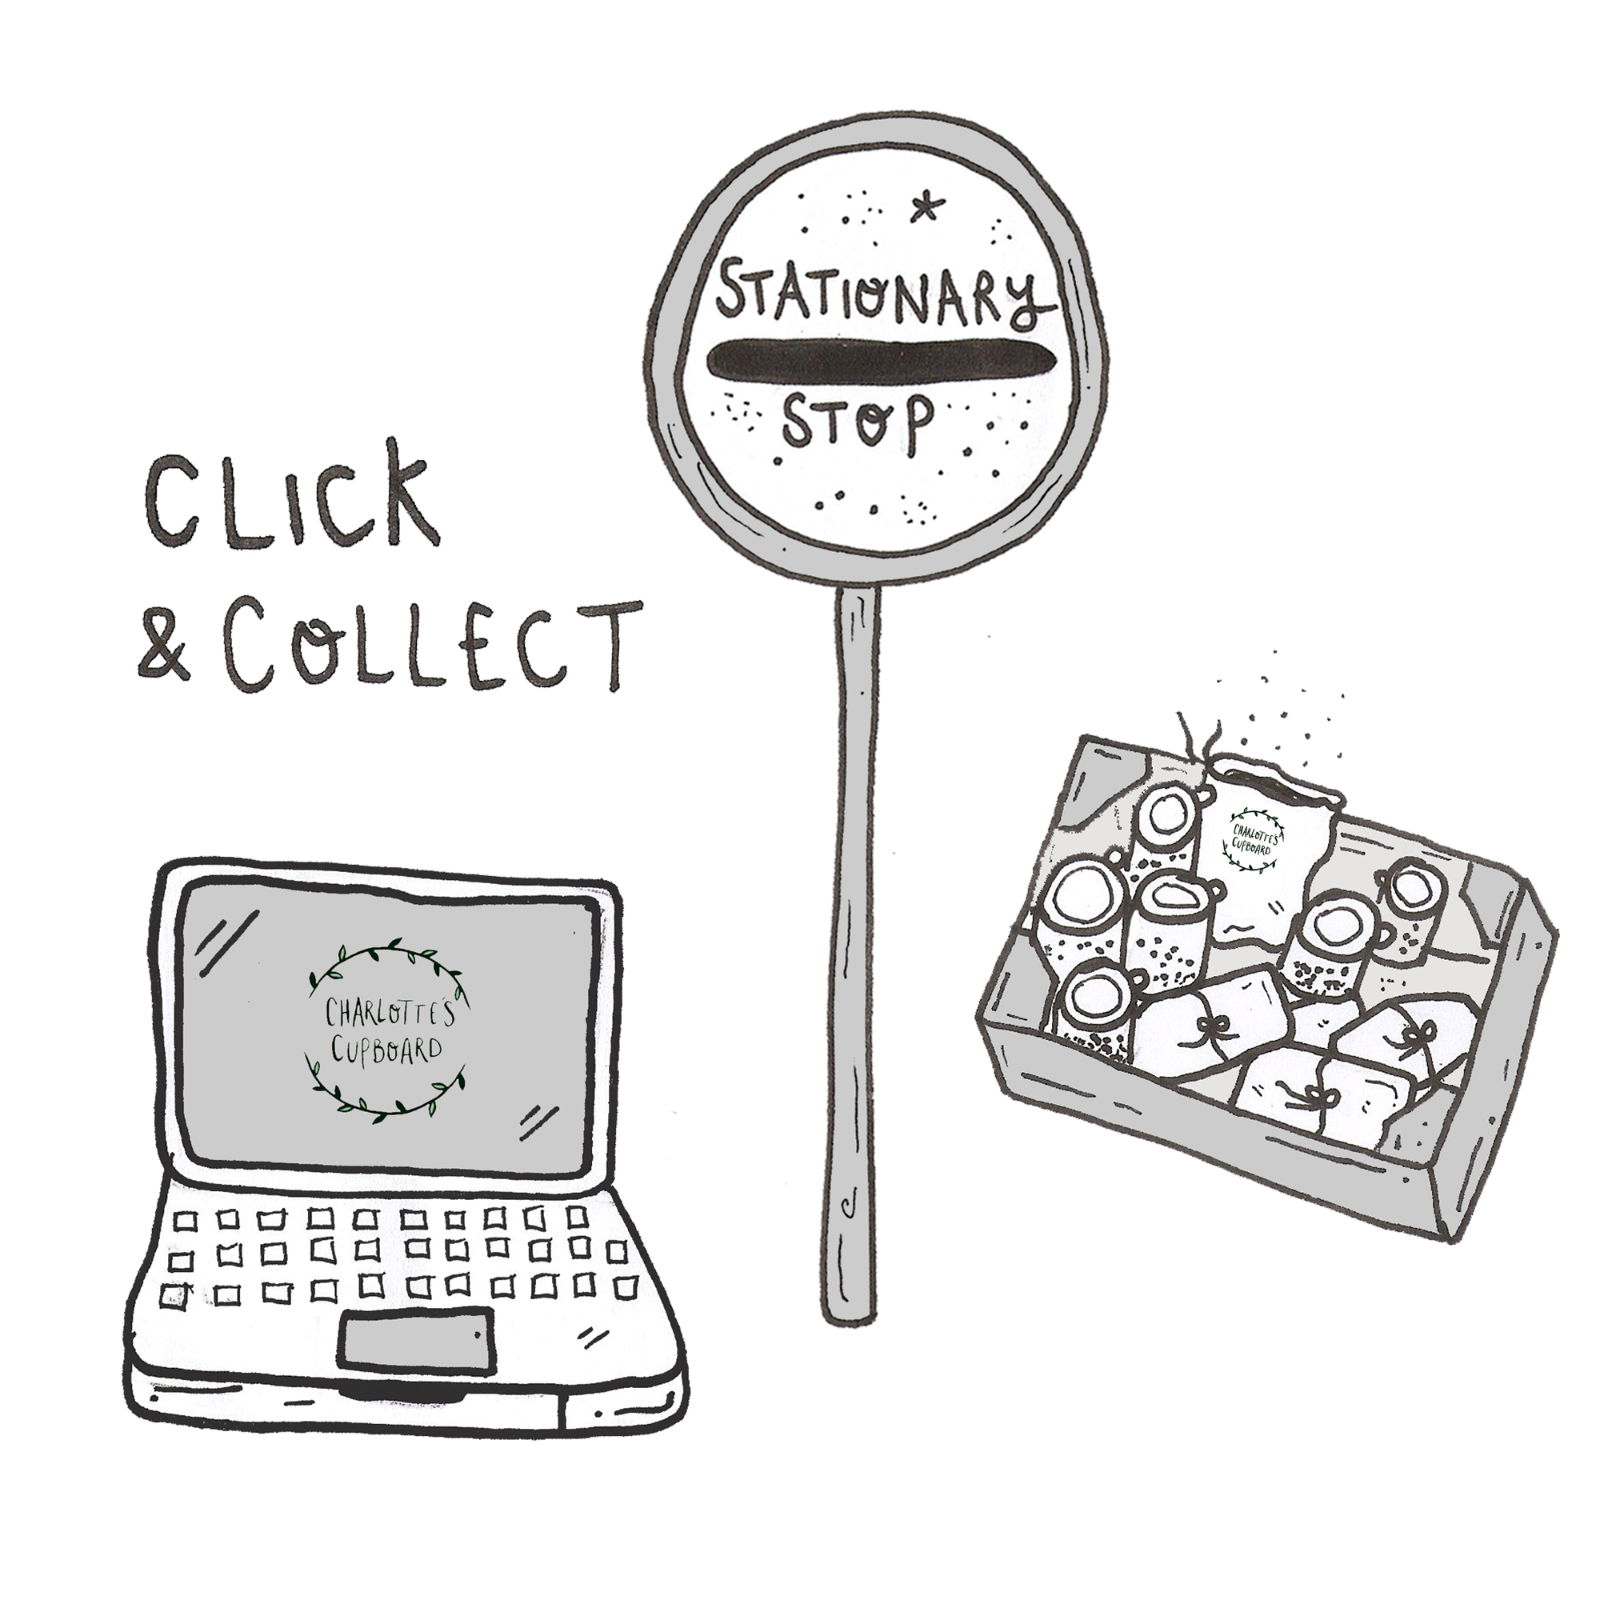 click_and_collect